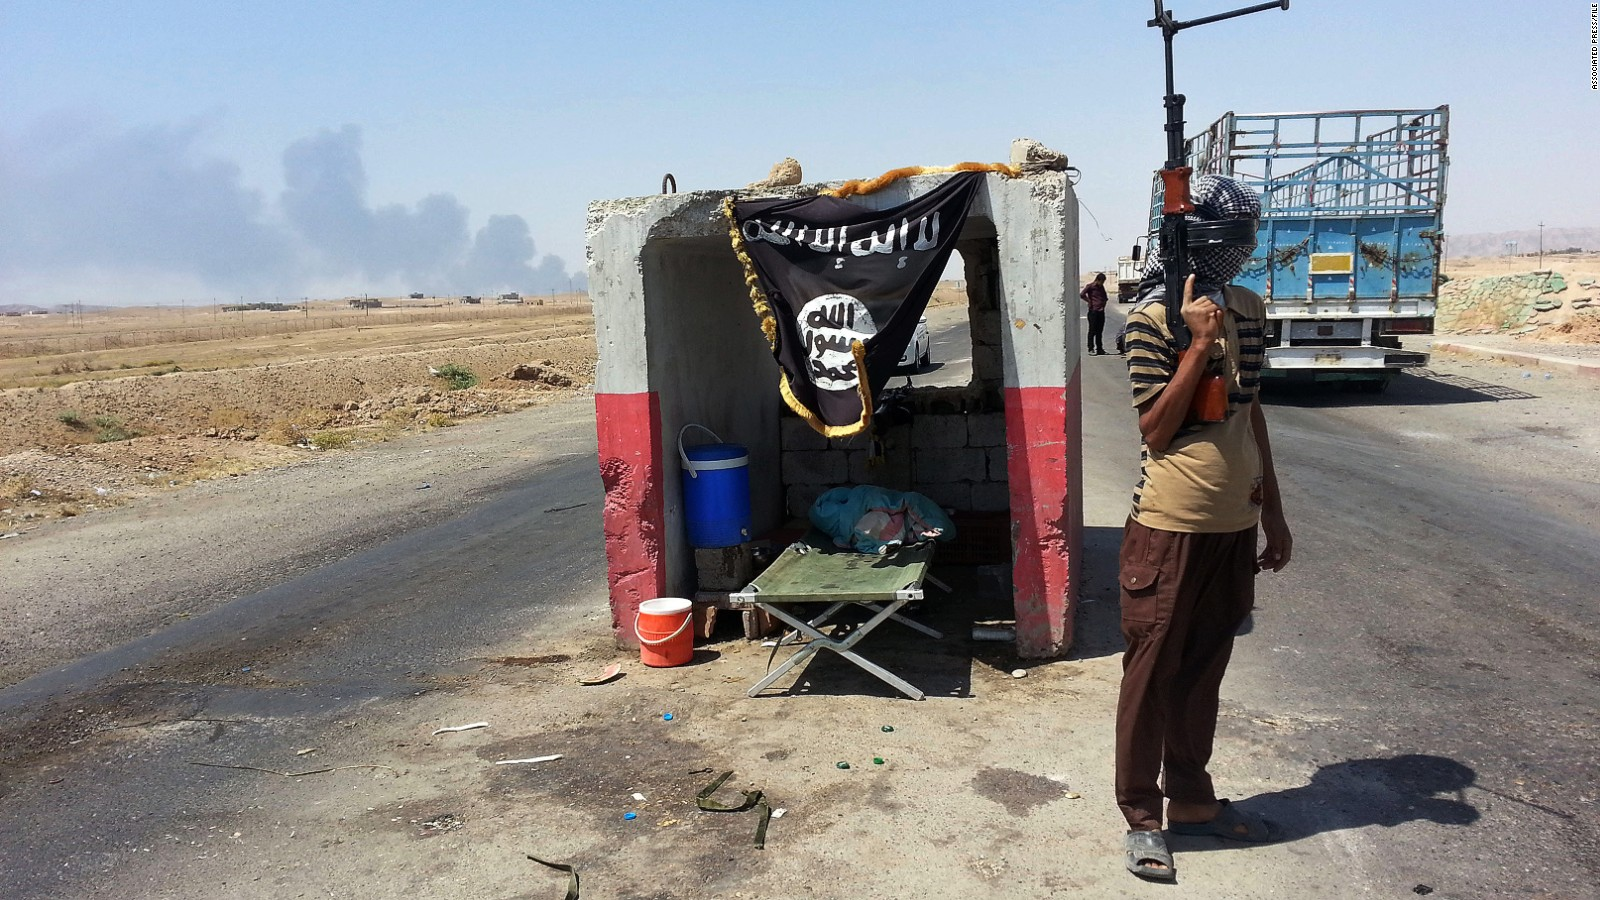 isis: everything you need to know about the group - cnn